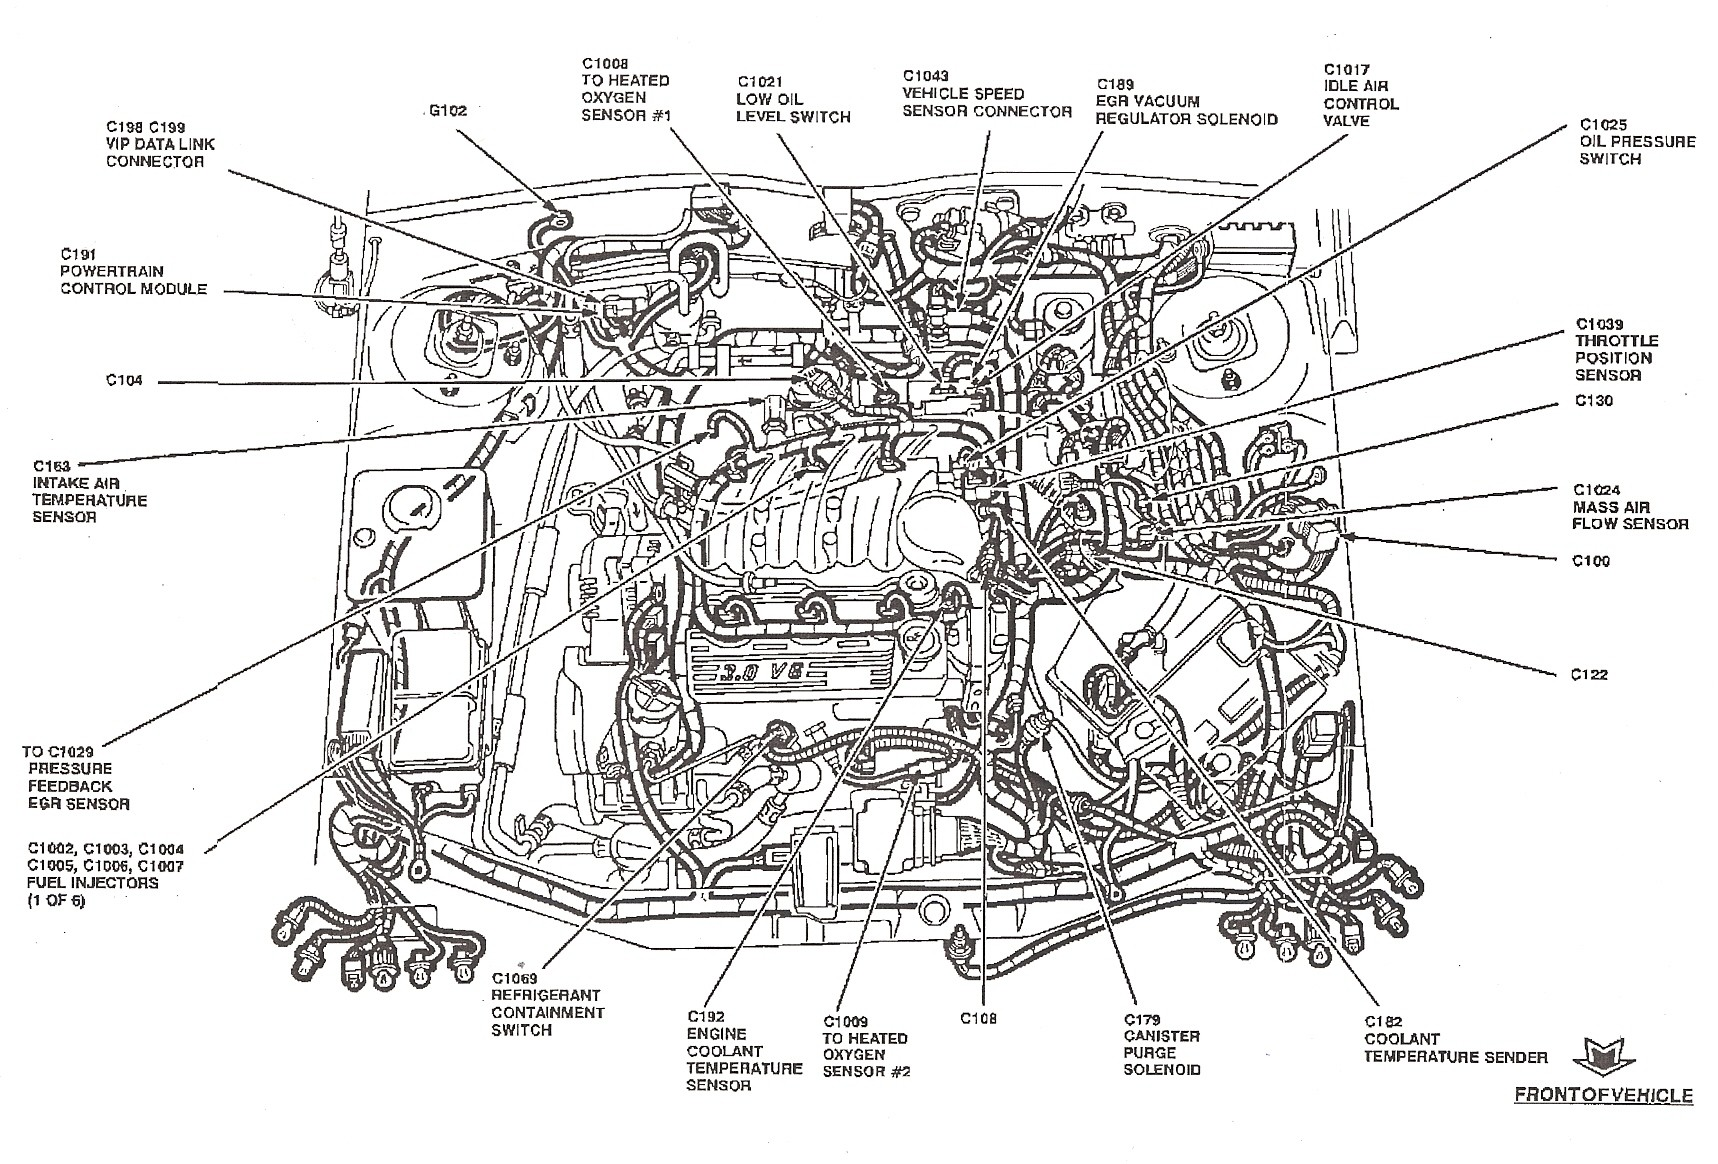 hight resolution of 2002 ford focus se engine diagram 2011 ford fiesta engine diagram wiring diagram